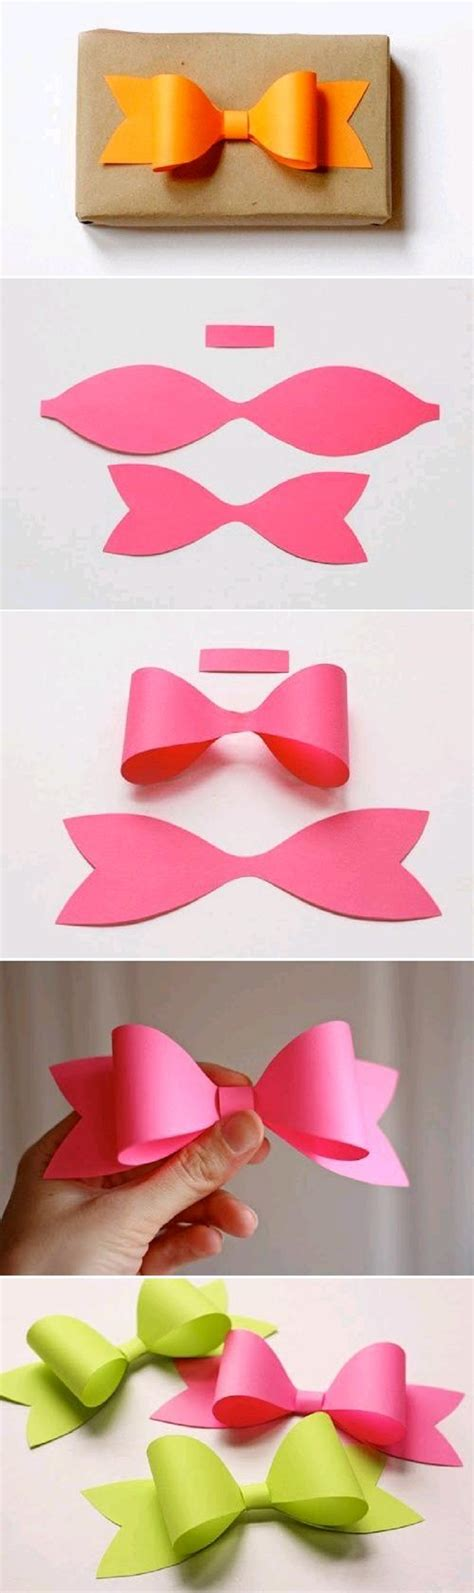 the paper company crafts and creativity color and creativity crafts made from foam paper the